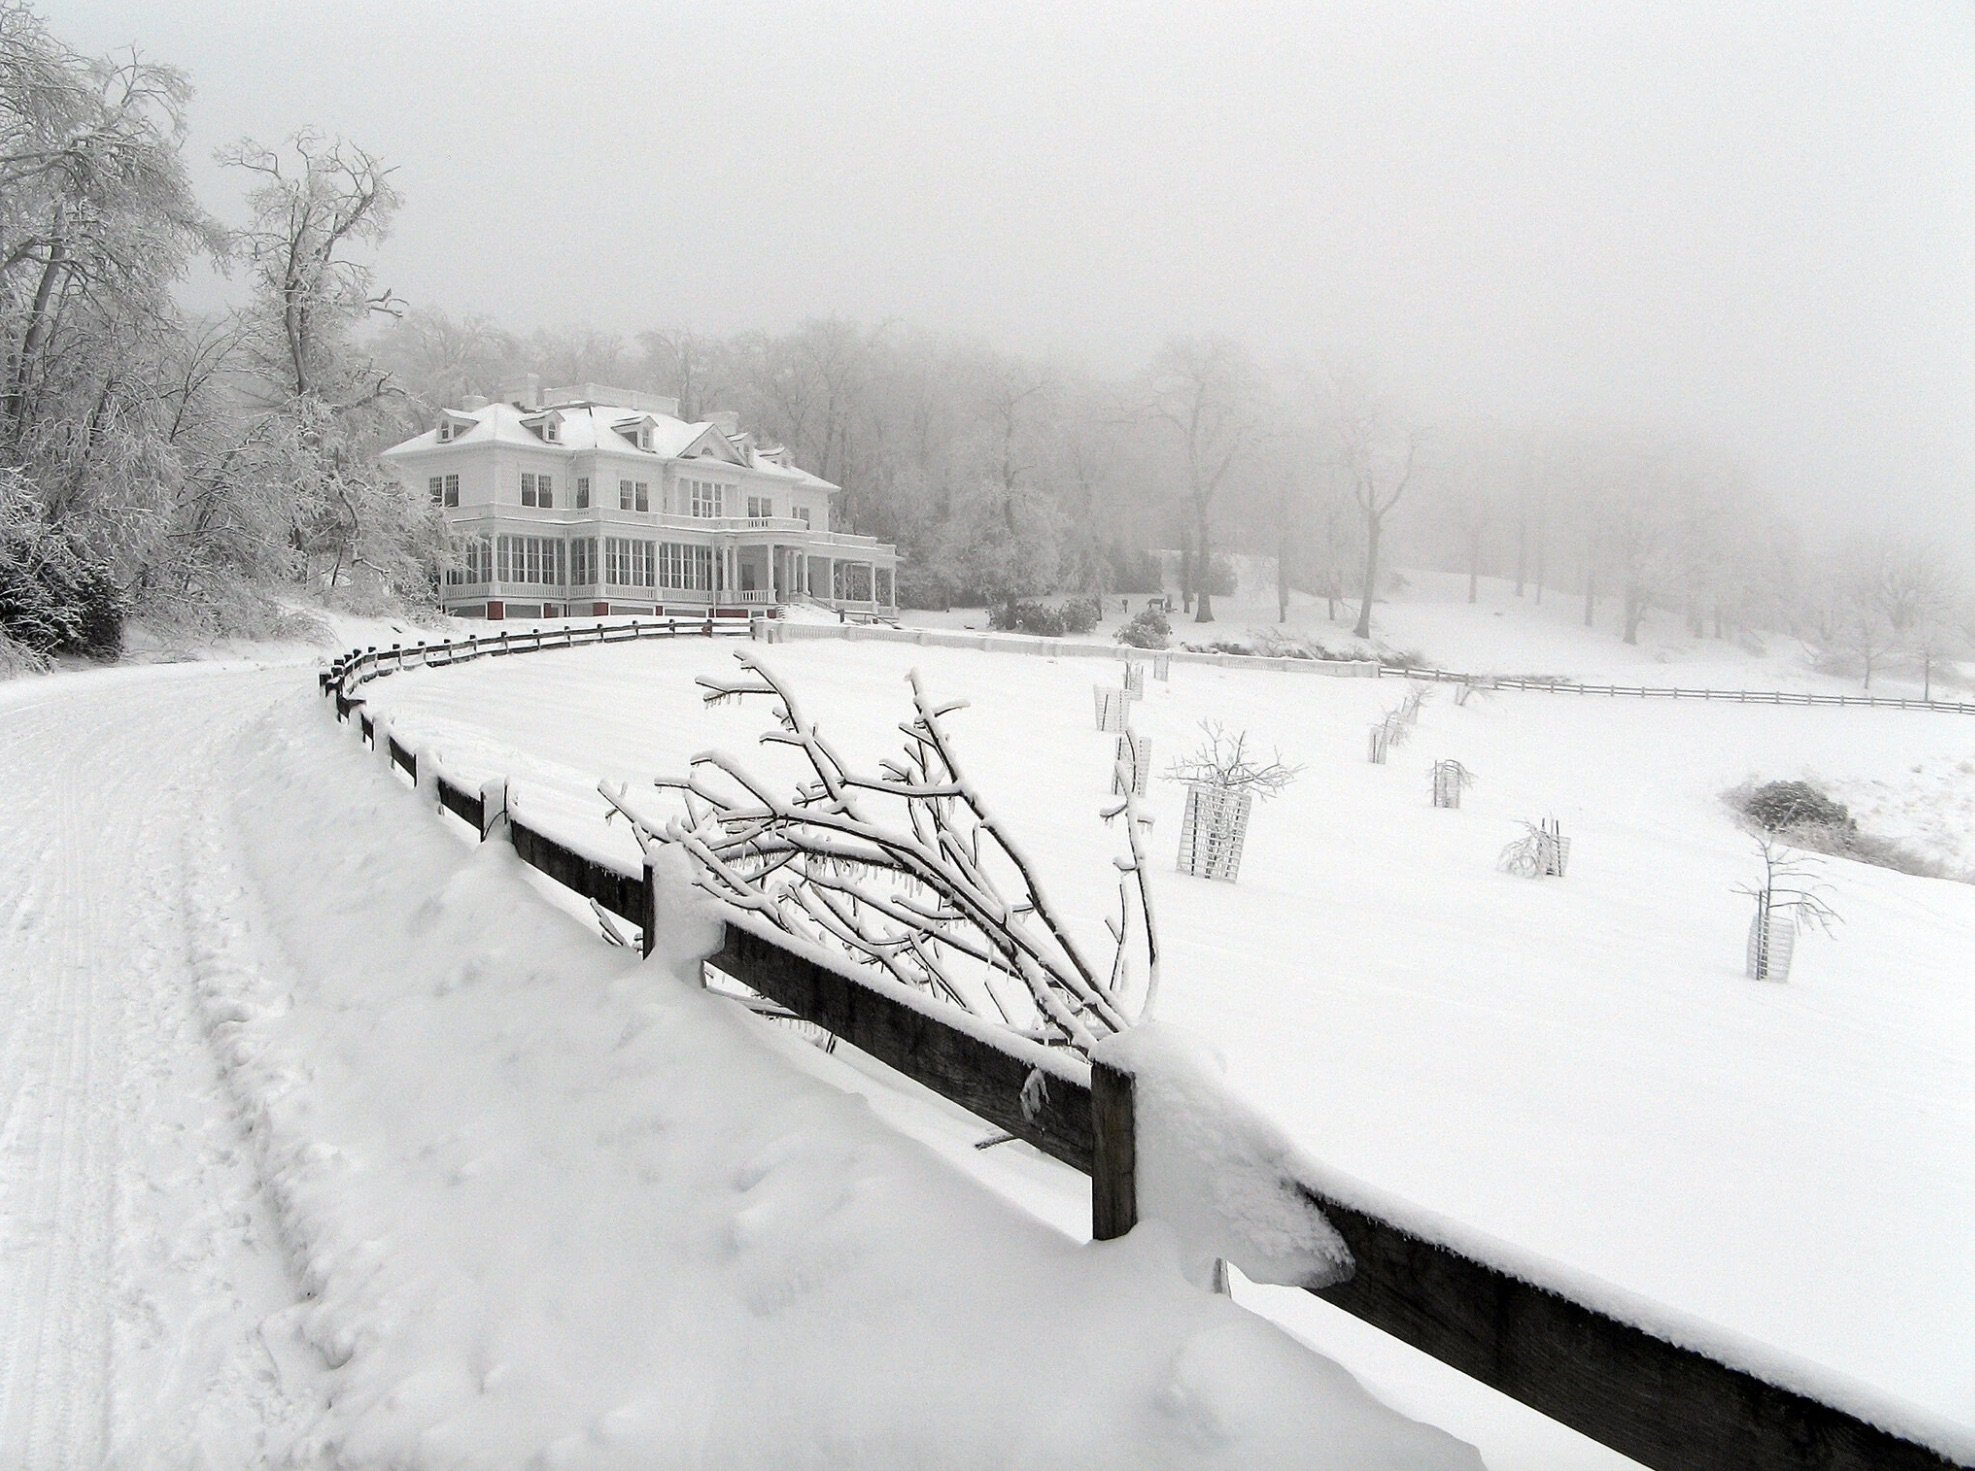 Moses H. Cone Estate, Blue Ridge Parkway; Bill Blake / The New York Times